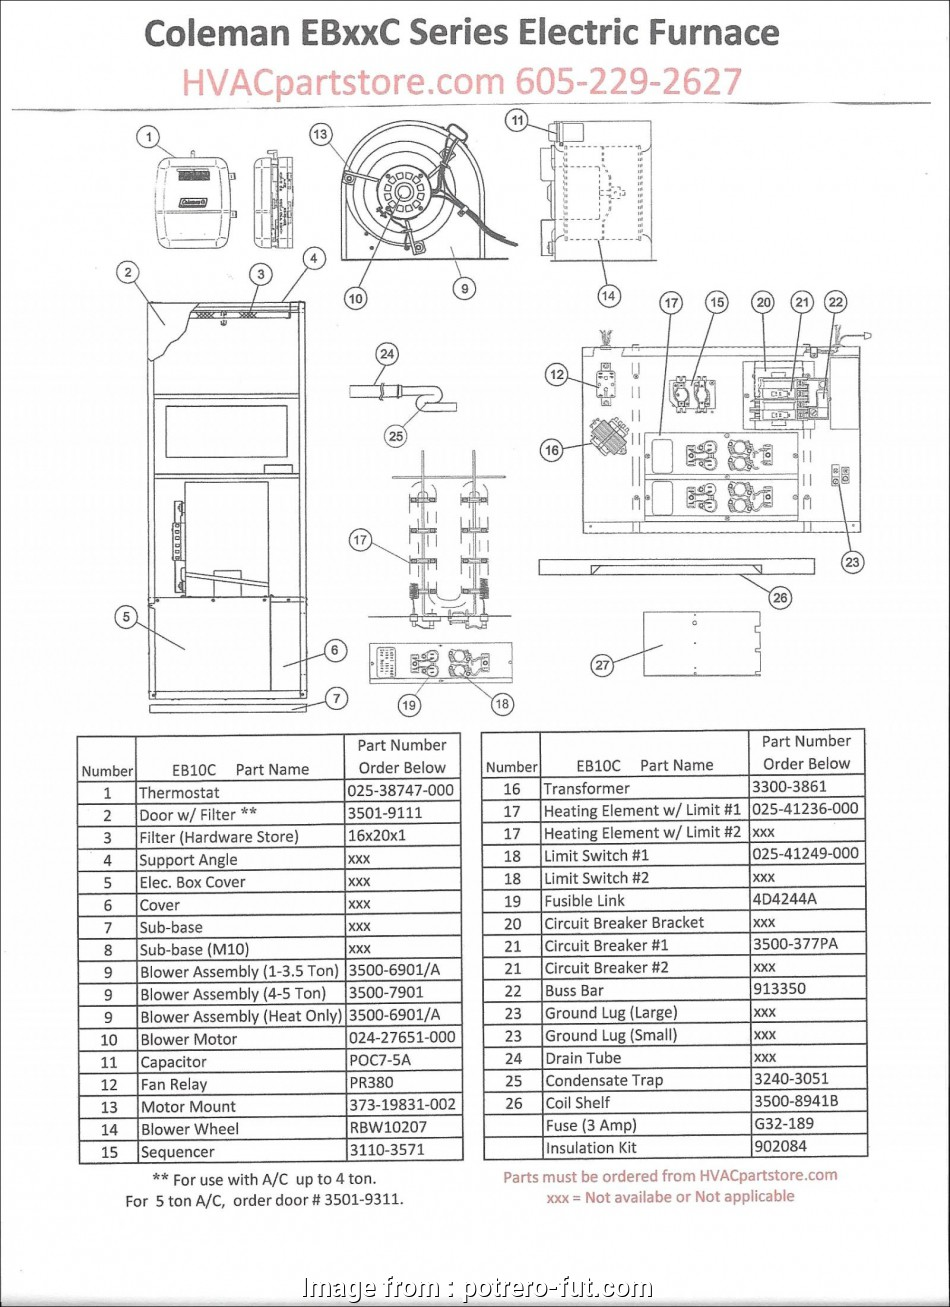 Honeywell Analog Thermostat Wiring Diagram Popular Coleman